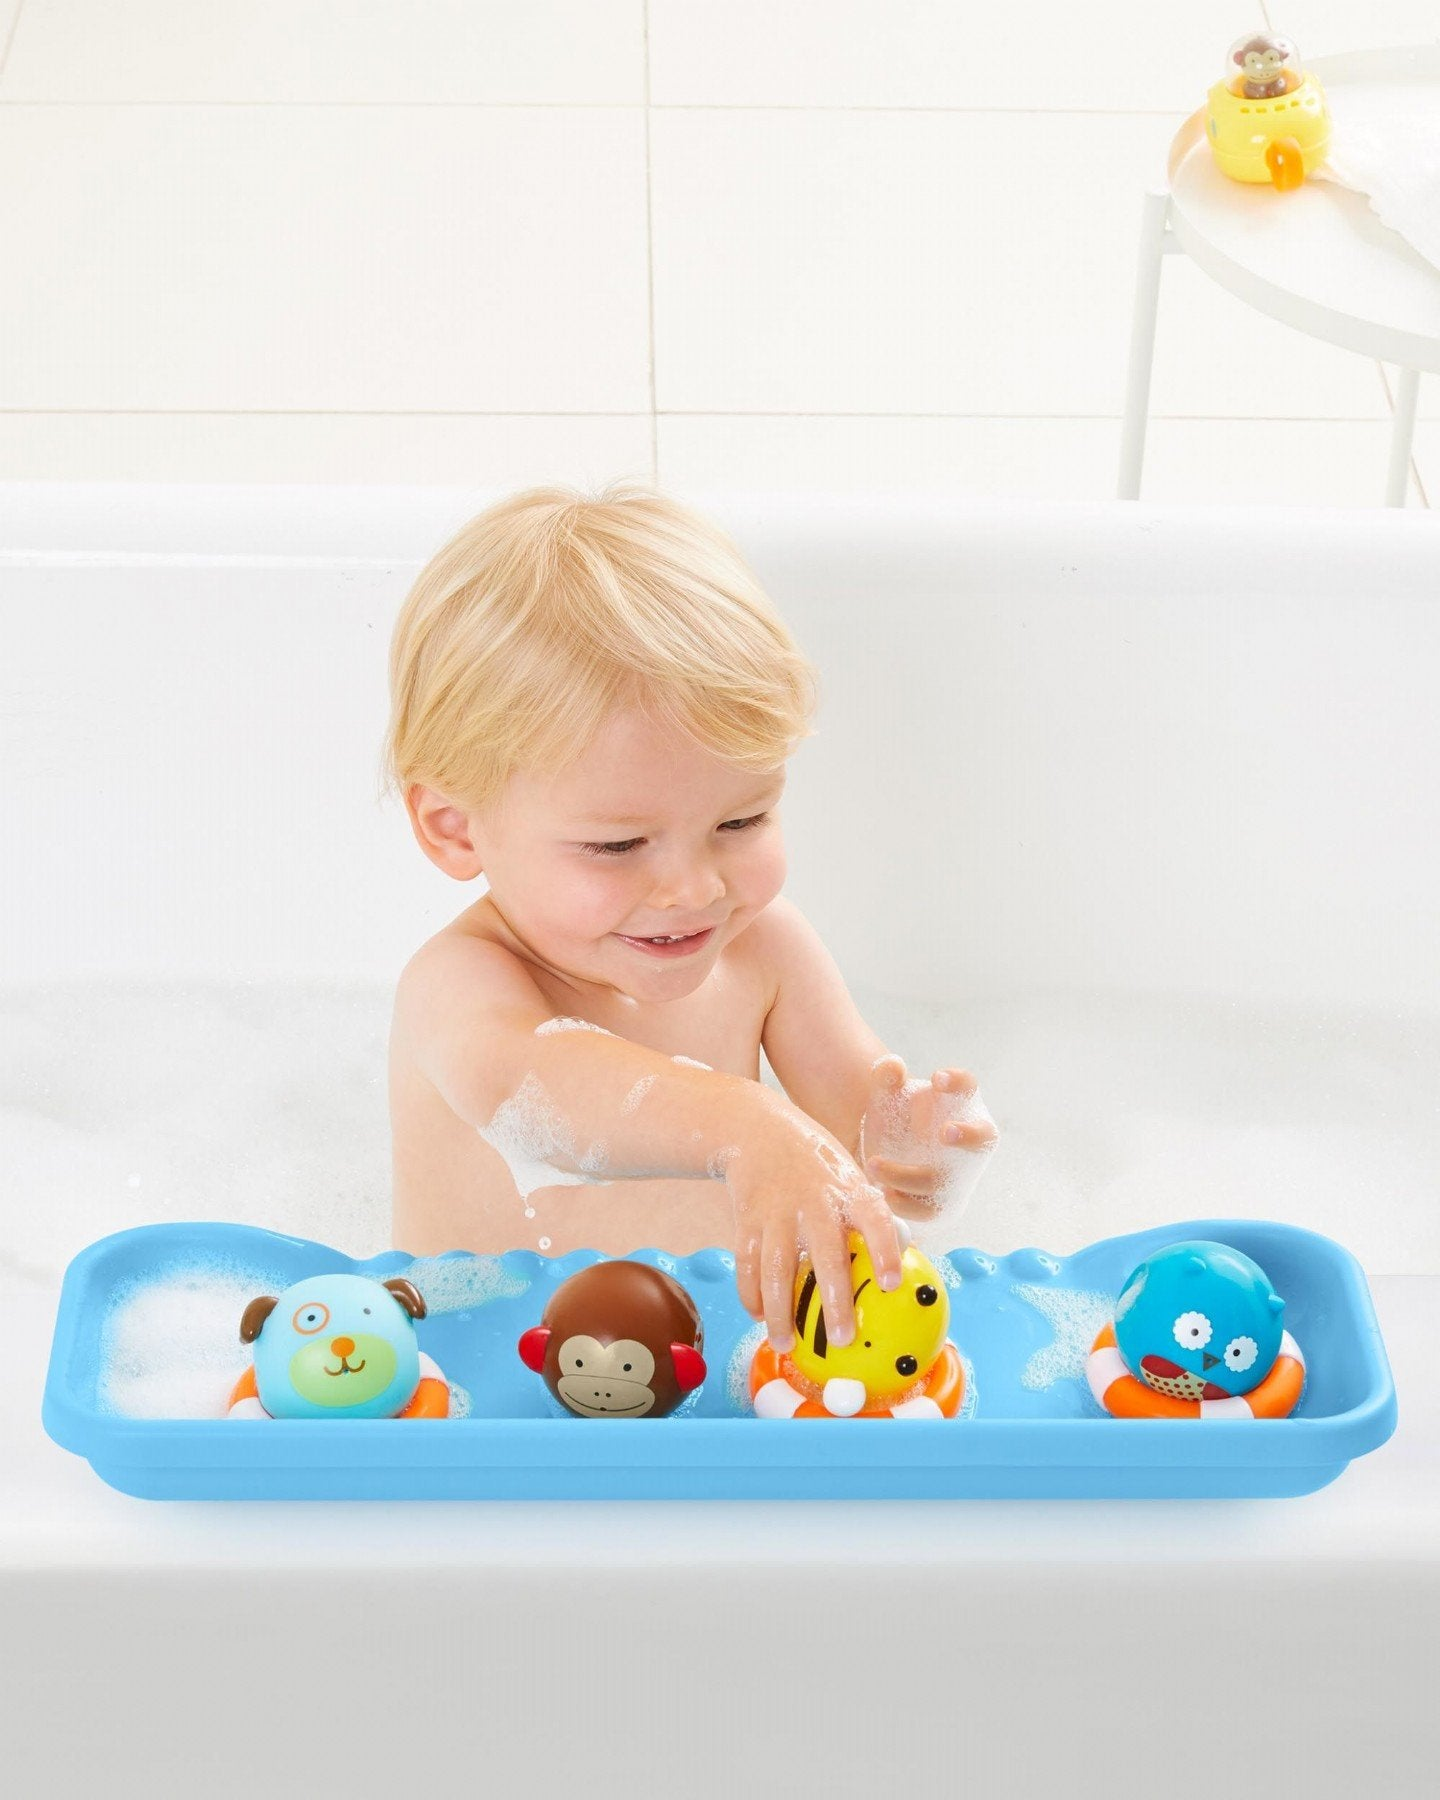 Skip Hop Moby Shelfie Bathtub Play Tray